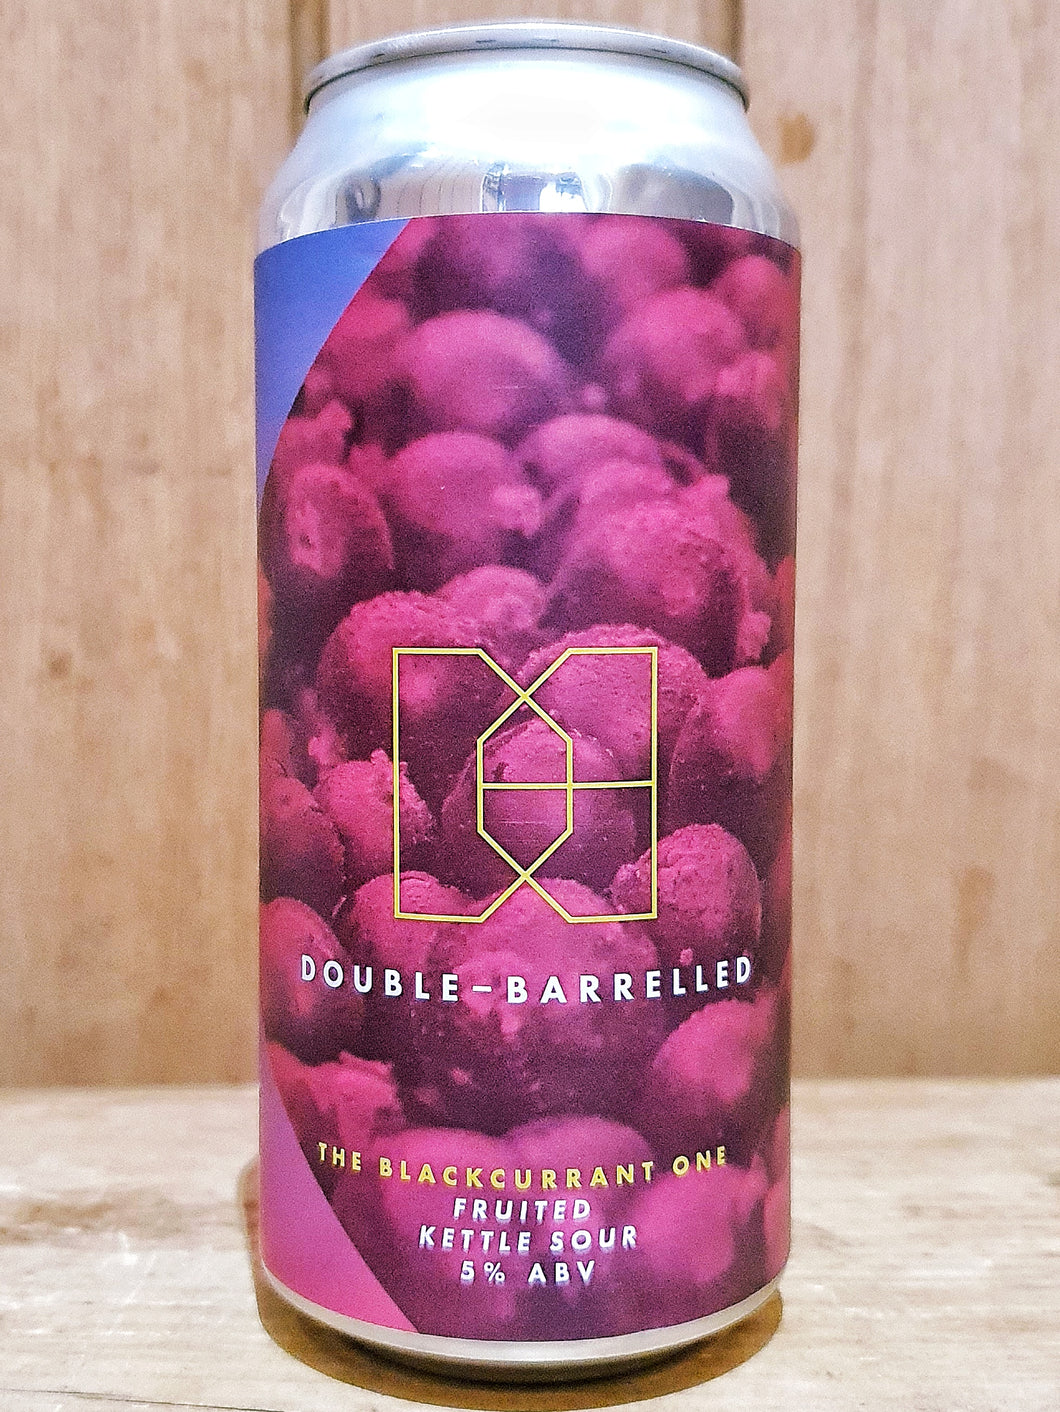 Double Barrelled - The Blackcurrant One